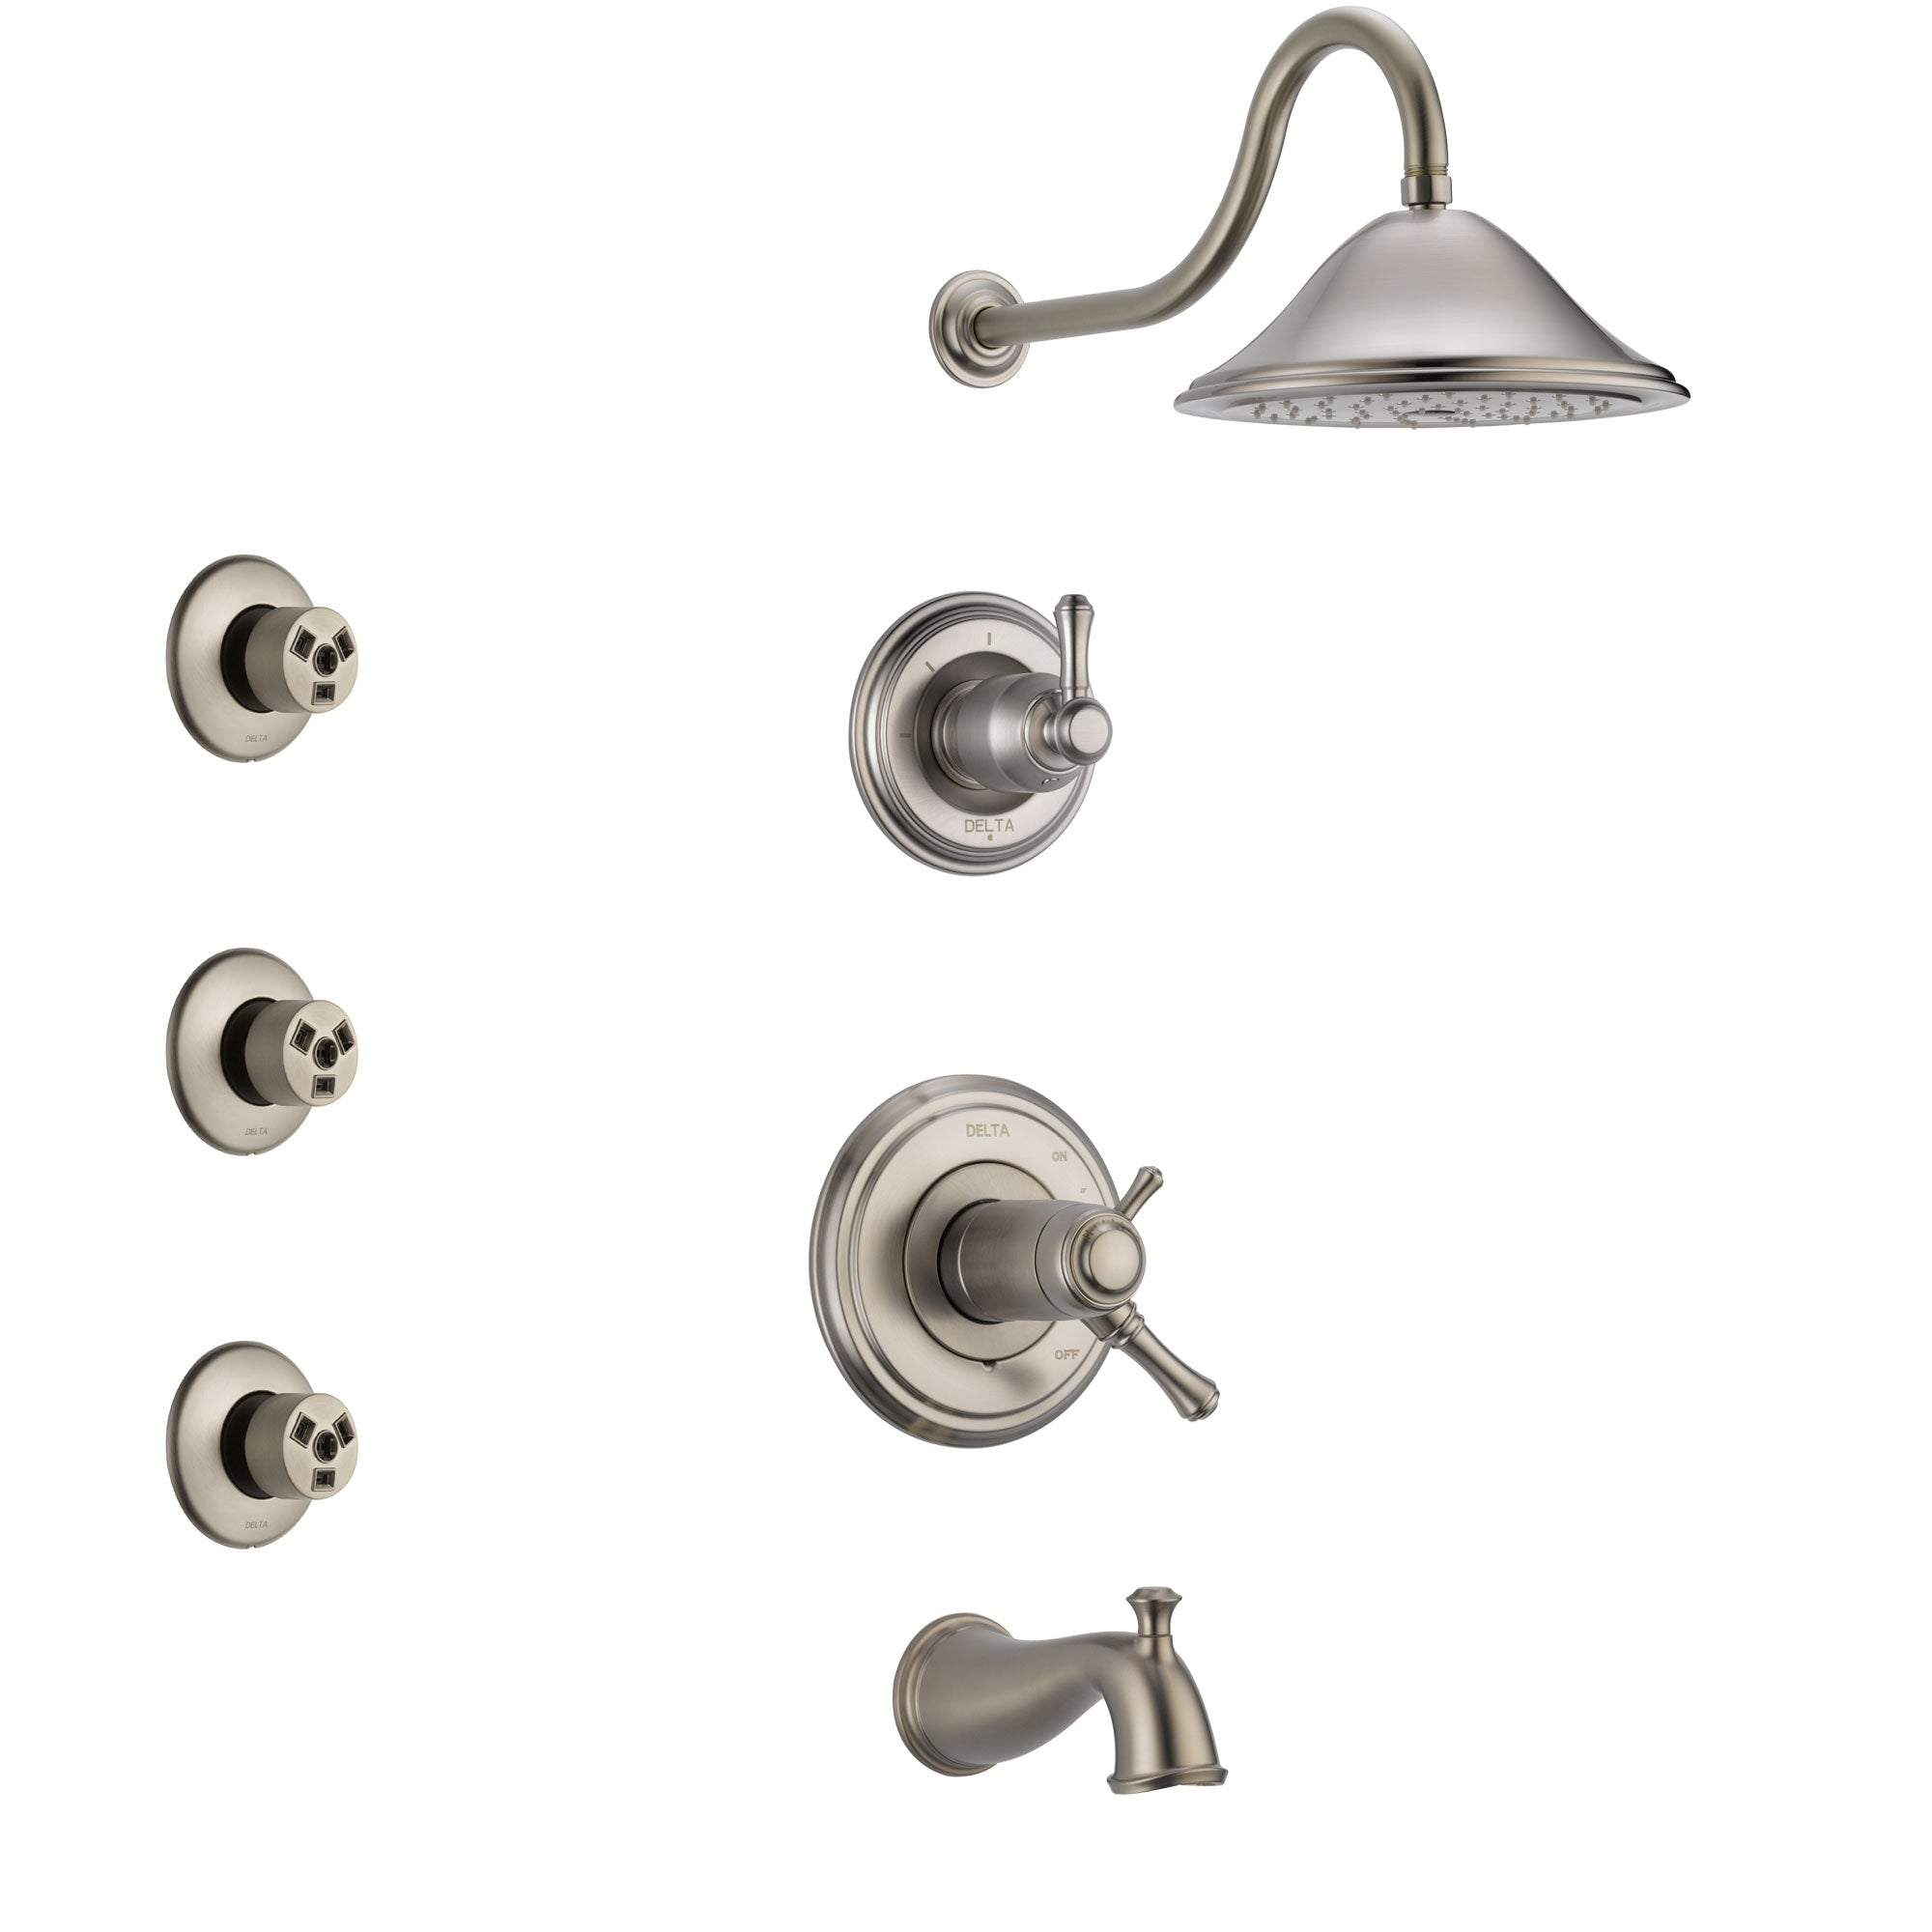 Delta Cassidy Stainless Steel Finish Tub and Shower System with Dual Thermostatic Control Handle, Diverter, Showerhead, and 3 Body Sprays SS17T4972SS1